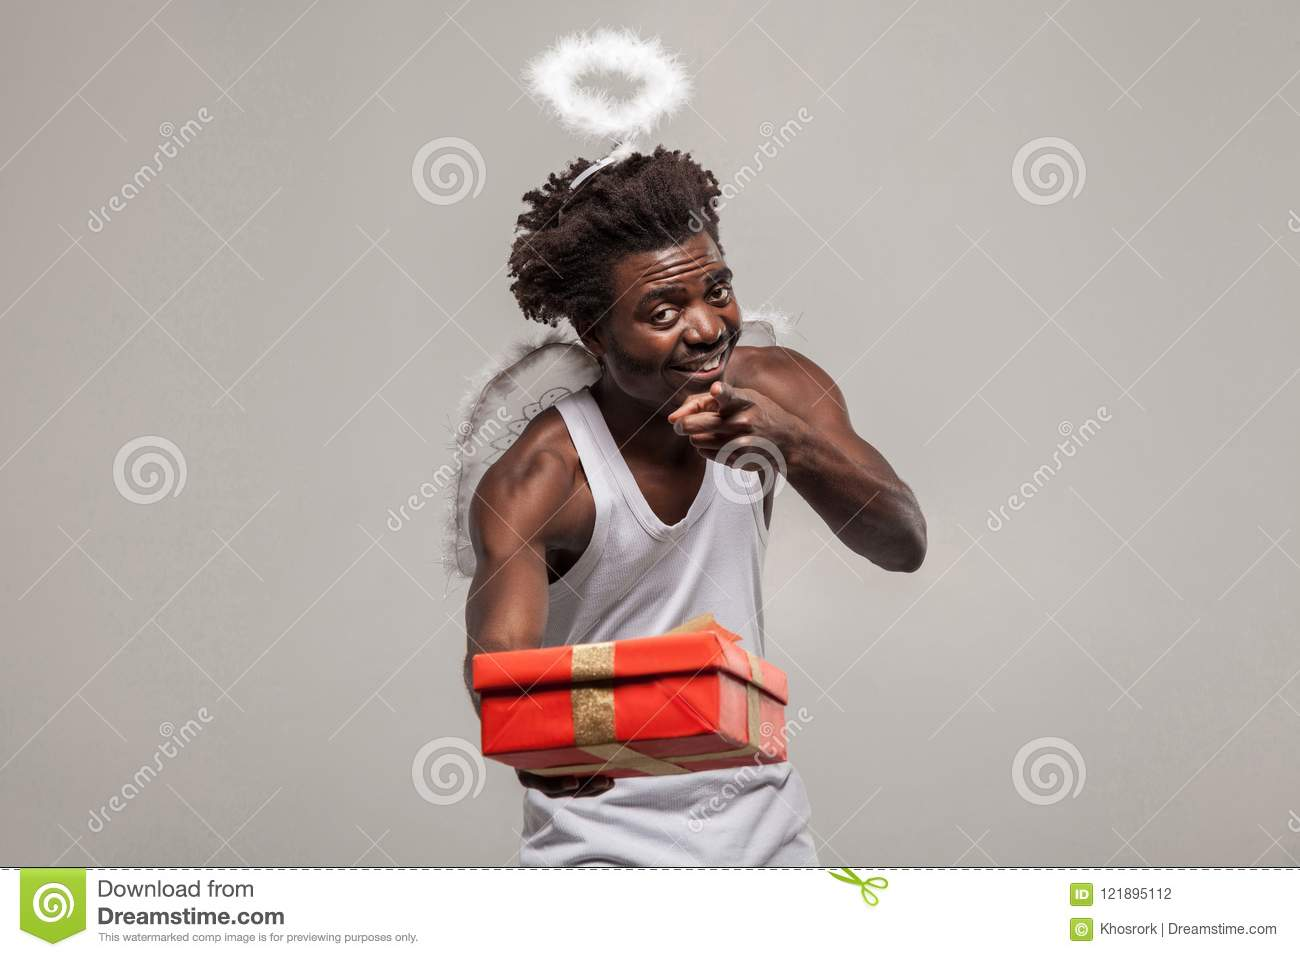 pointing finger sharing Love and gift. dark skinned bearded African angel funny man with white shirt, nimbus and winks